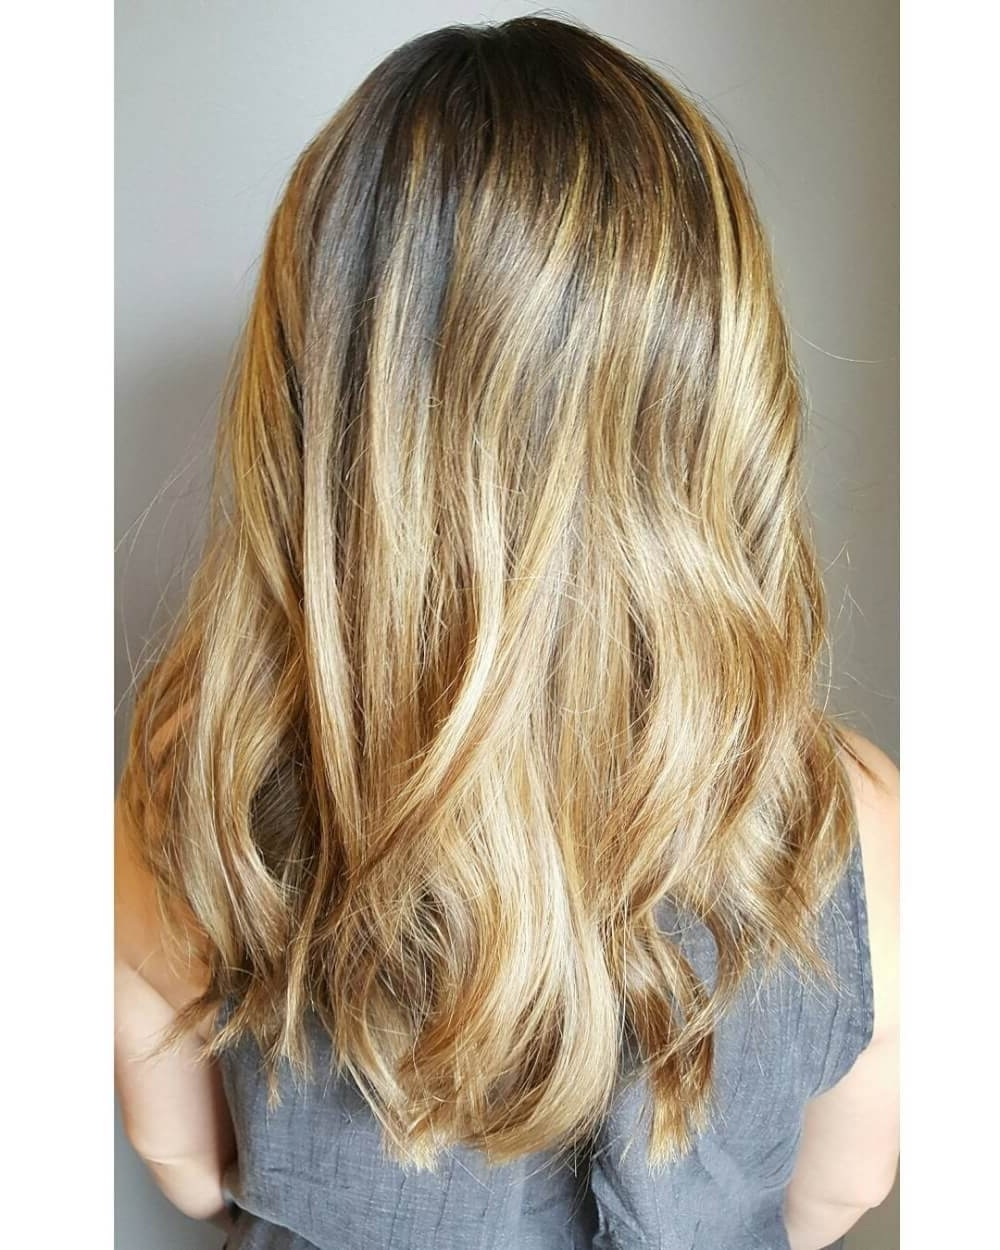 38 Top Blonde Highlights Of 2018 – Platinum, Ash, Dirty, Honey & Dark Intended For Well Known Icy Highlights And Loose Curls Blonde Hairstyles (View 7 of 20)